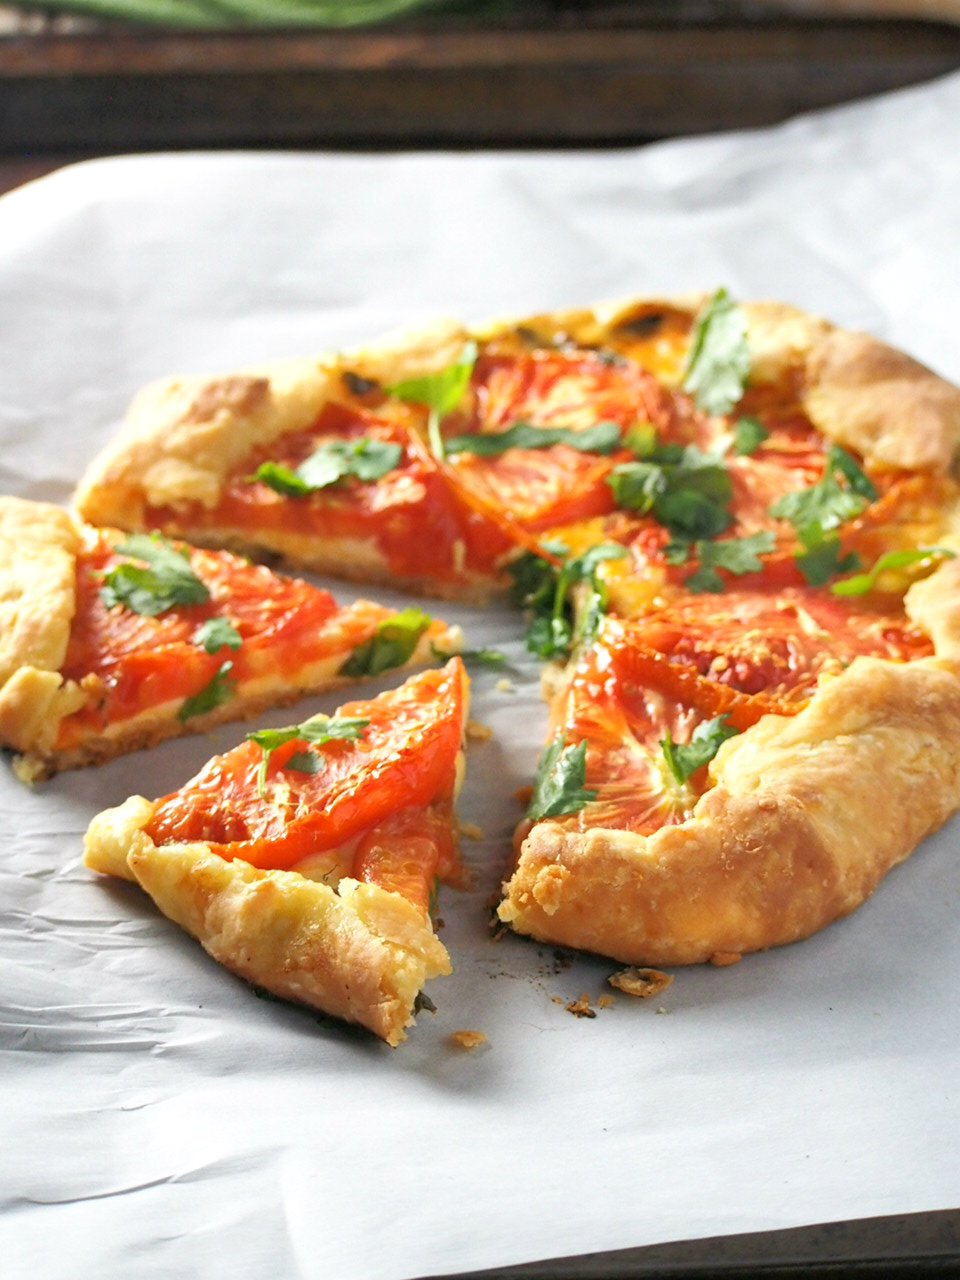 Serve this Cheese Tomato Galette as a snack or as a light meal and delight your guests with the appetizing combination of tomato and cheese enclosed in a crisp and flaky pastry.